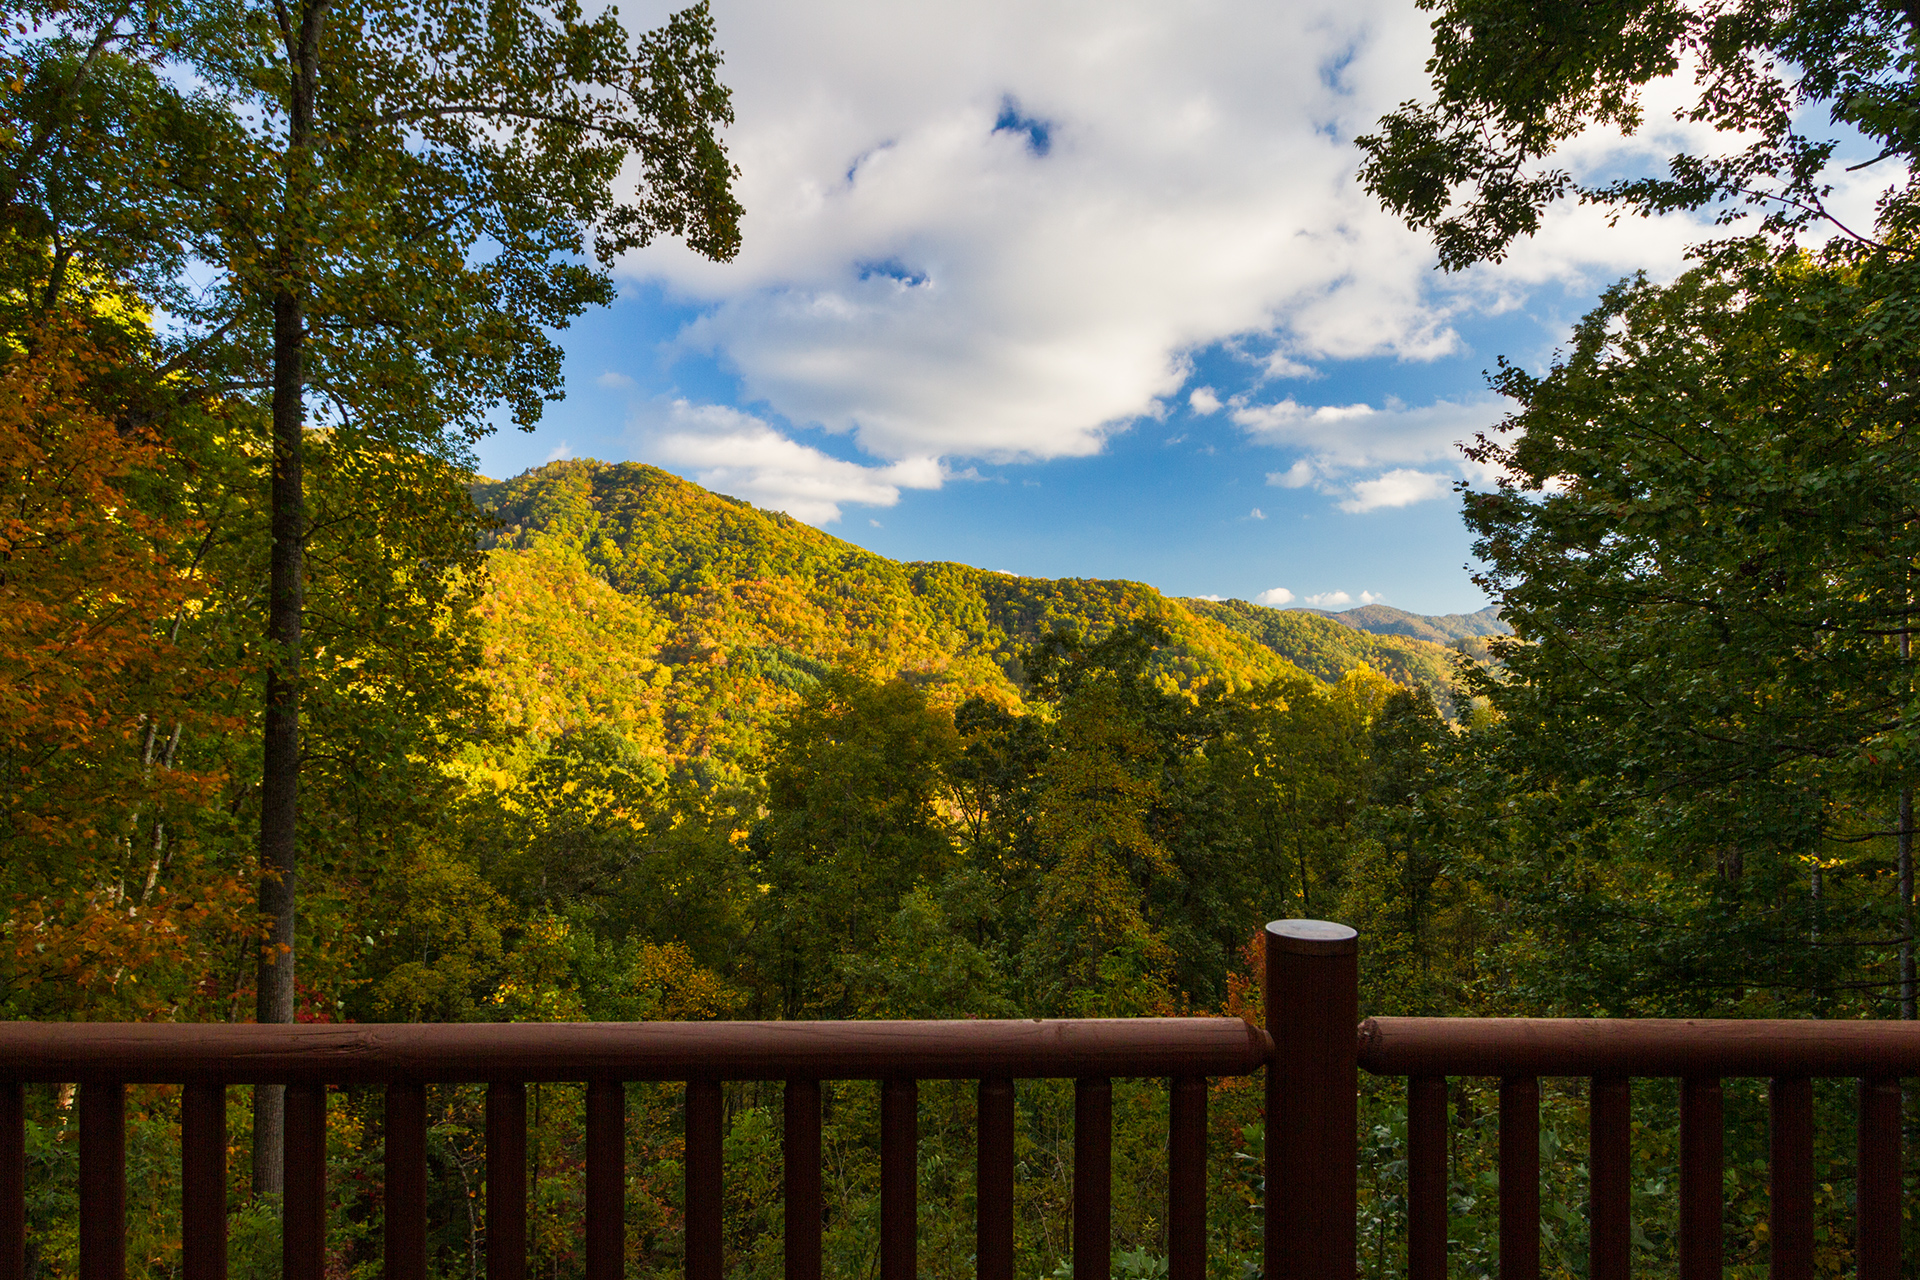 Baines Mountain Hideaway 2 Bedroom Rental Info By Carolina